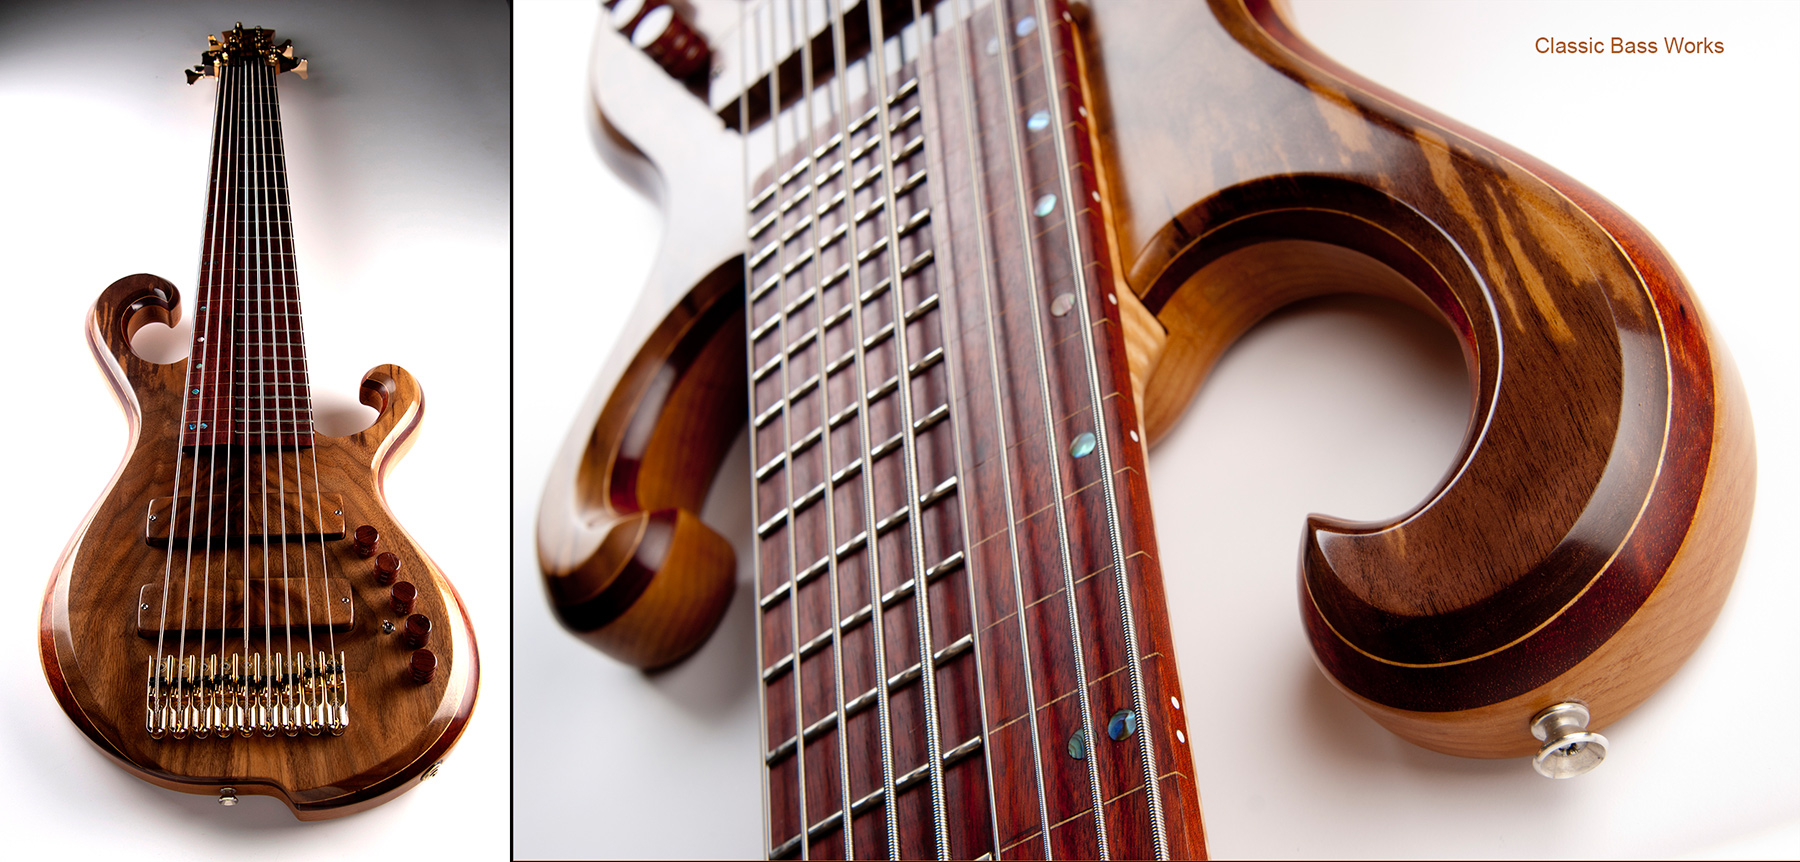 Classic Bas Works 9 String-Musicman Photography